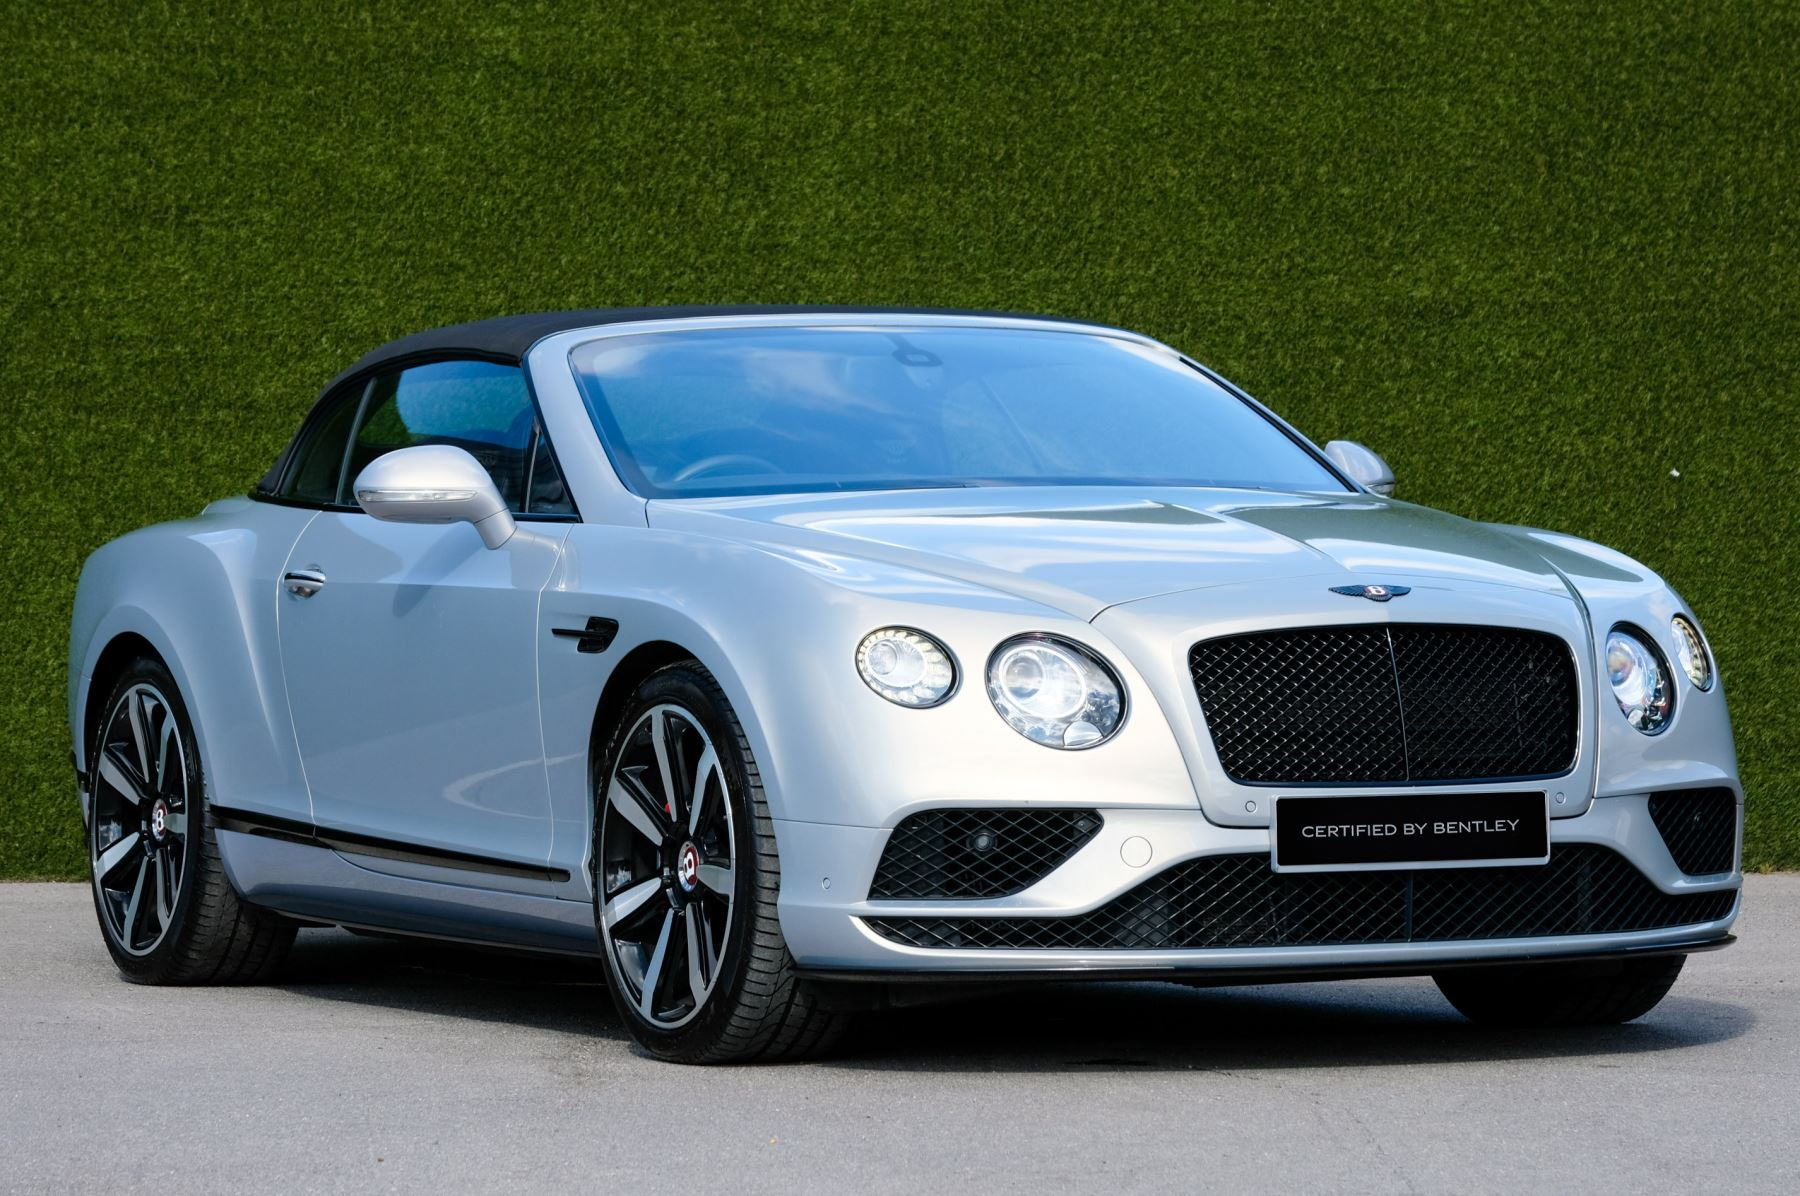 Bentley Continental GTC 4.0 V8 S Mulliner Driving Spec - Ventilated Front Seats with Massage Function image 10